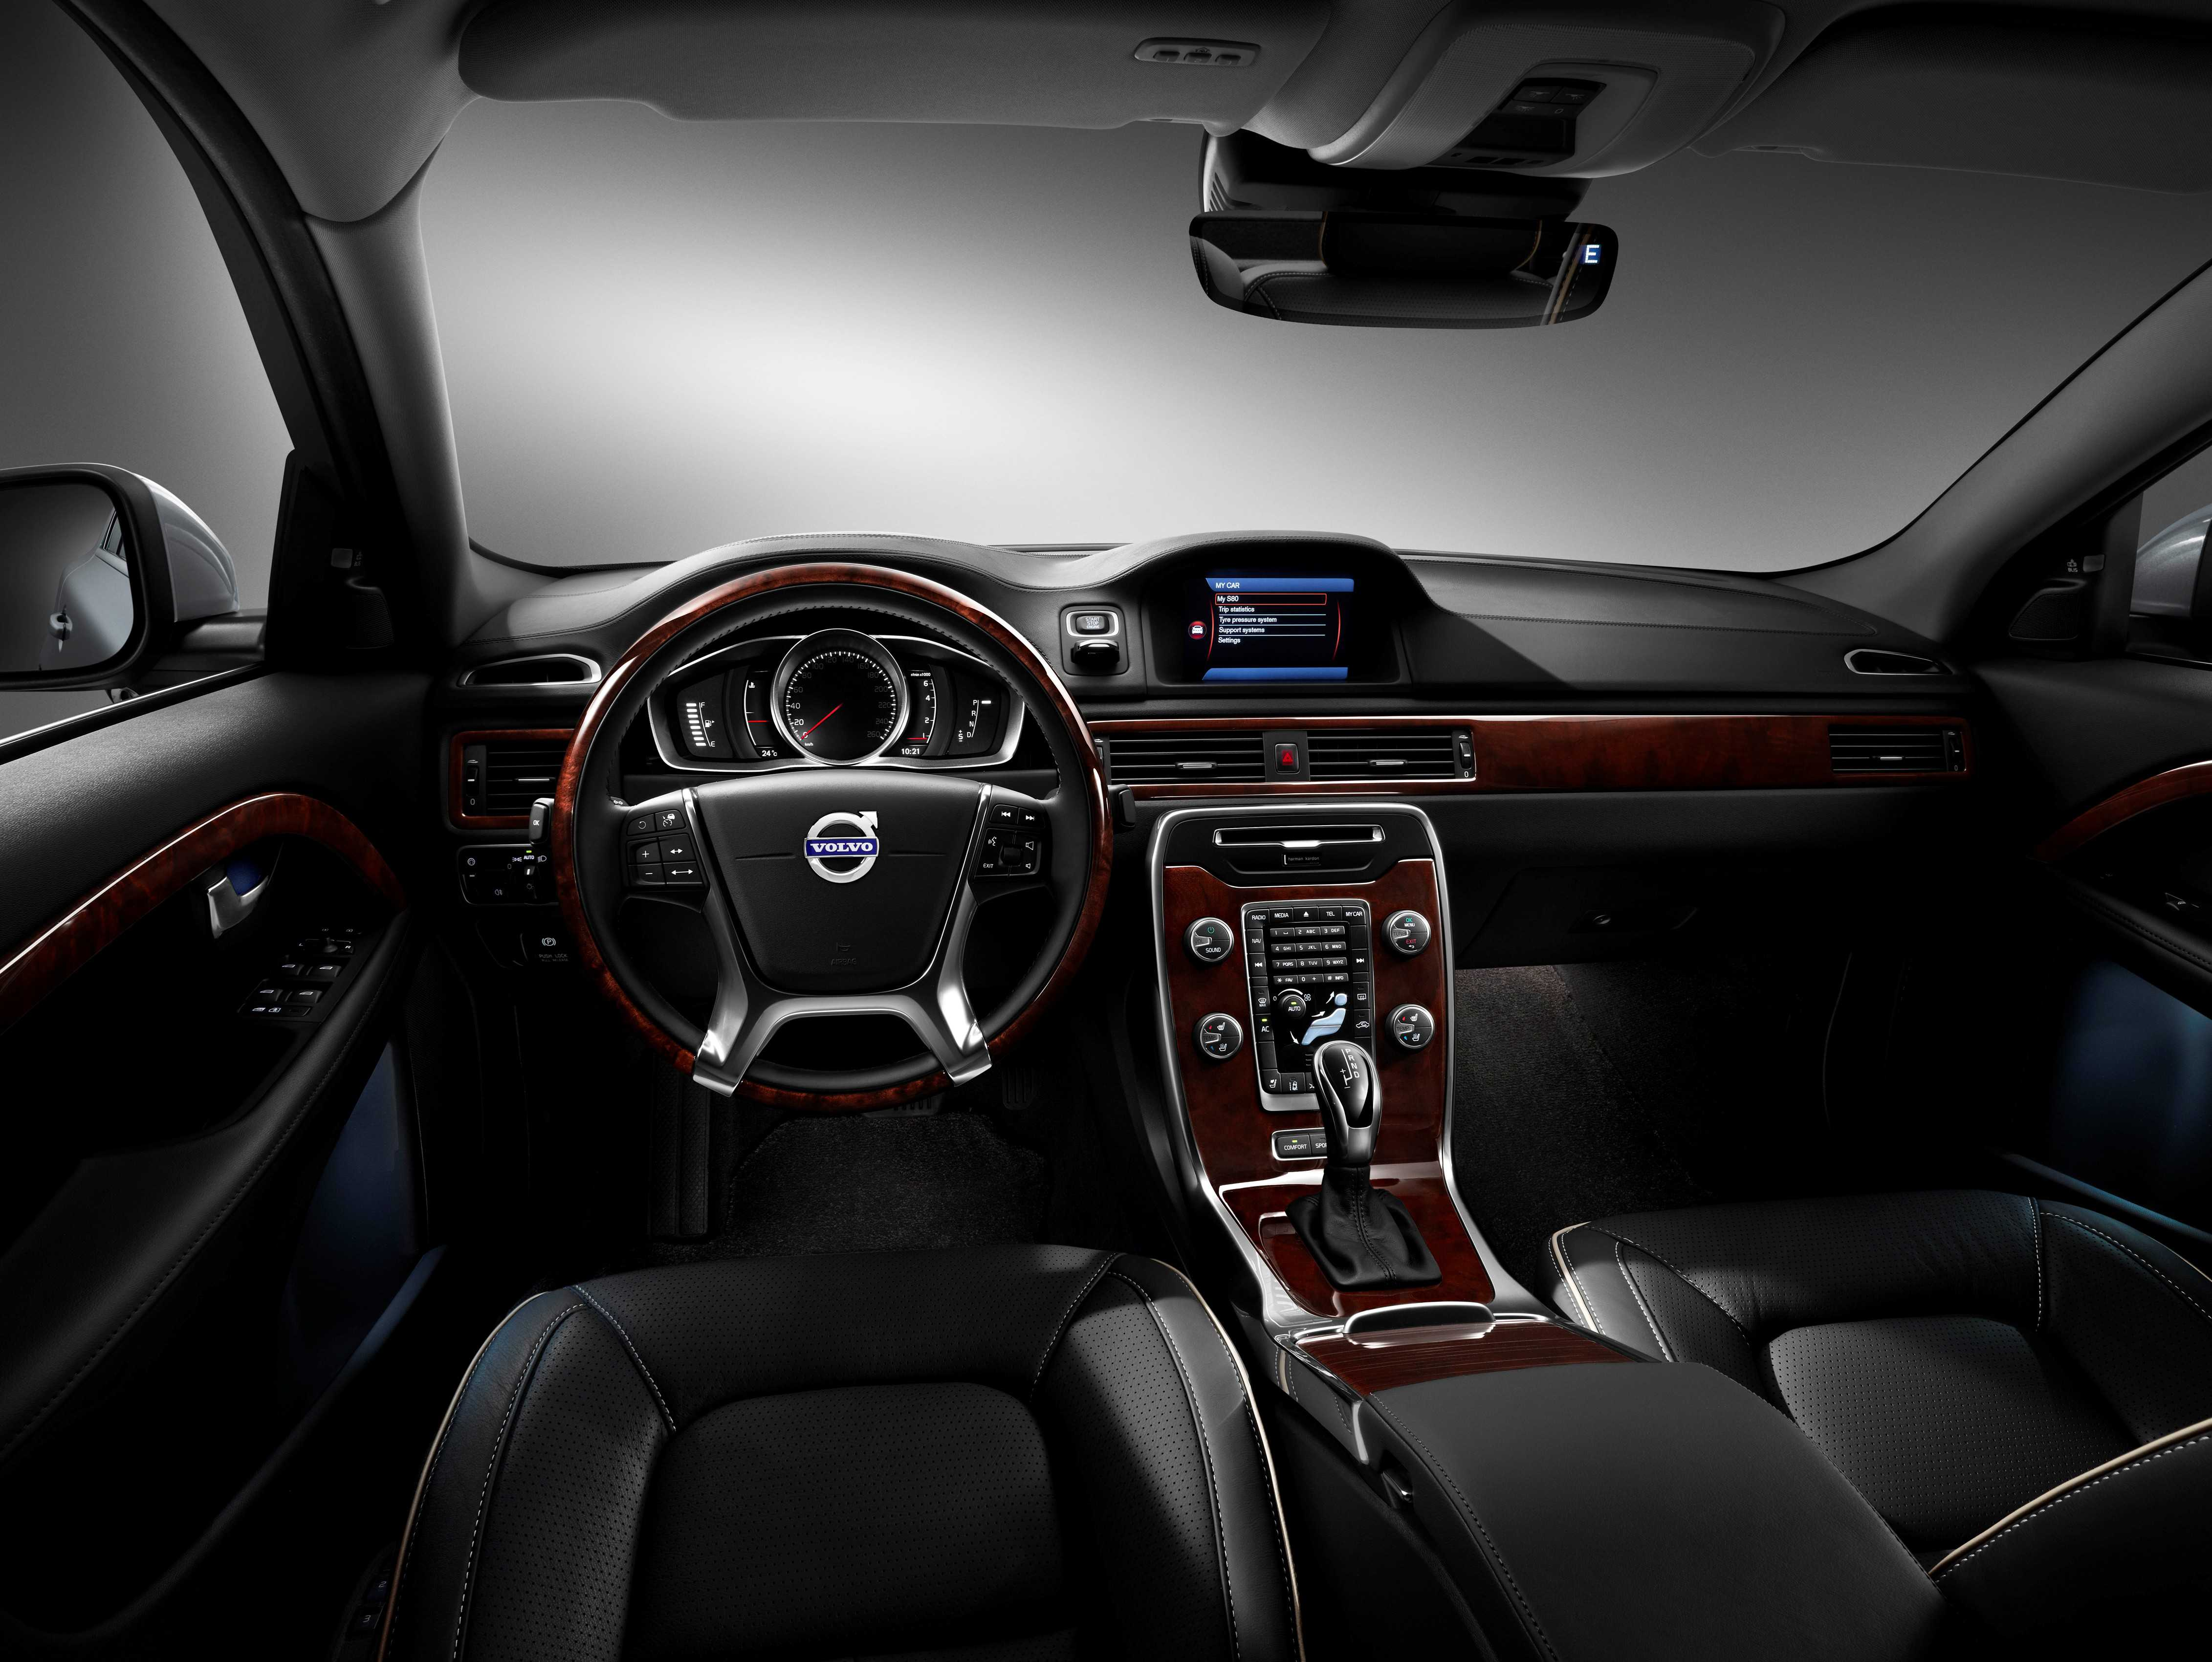 2016 Volvo S80 >> Volvo S80 D4 Geartronic 181hp 2016